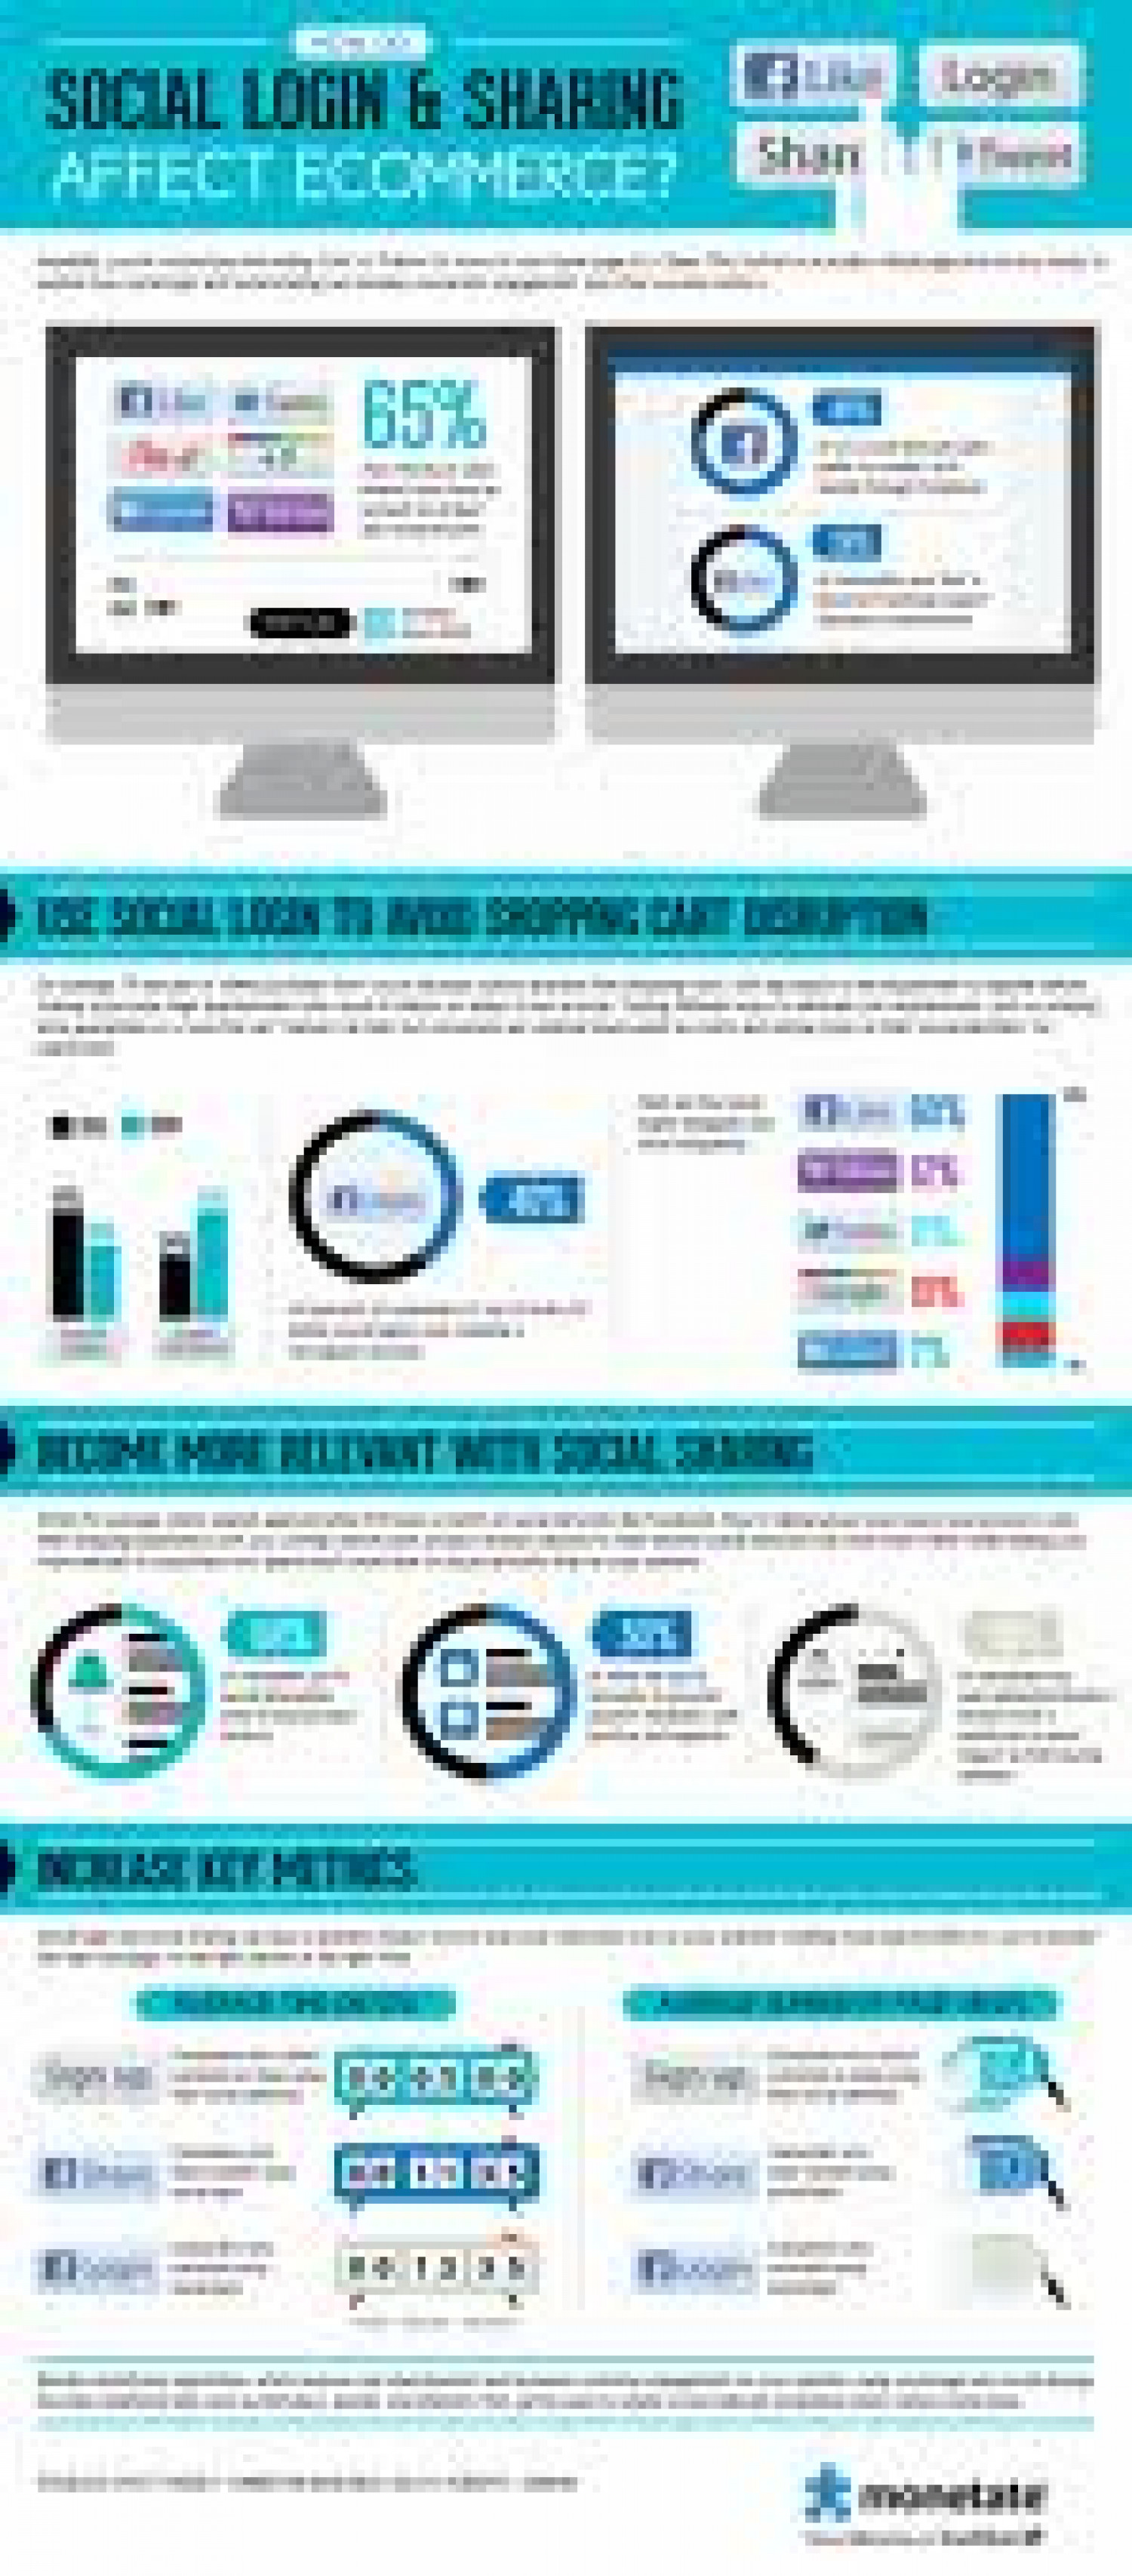 How Do Social Login & Sharing Affect Ecommerce?  Read more: http://monetate.com/infographic/how-do-social-login-sharing-affect-ecommerce/#ixzz1t2yZFSVq Infographic